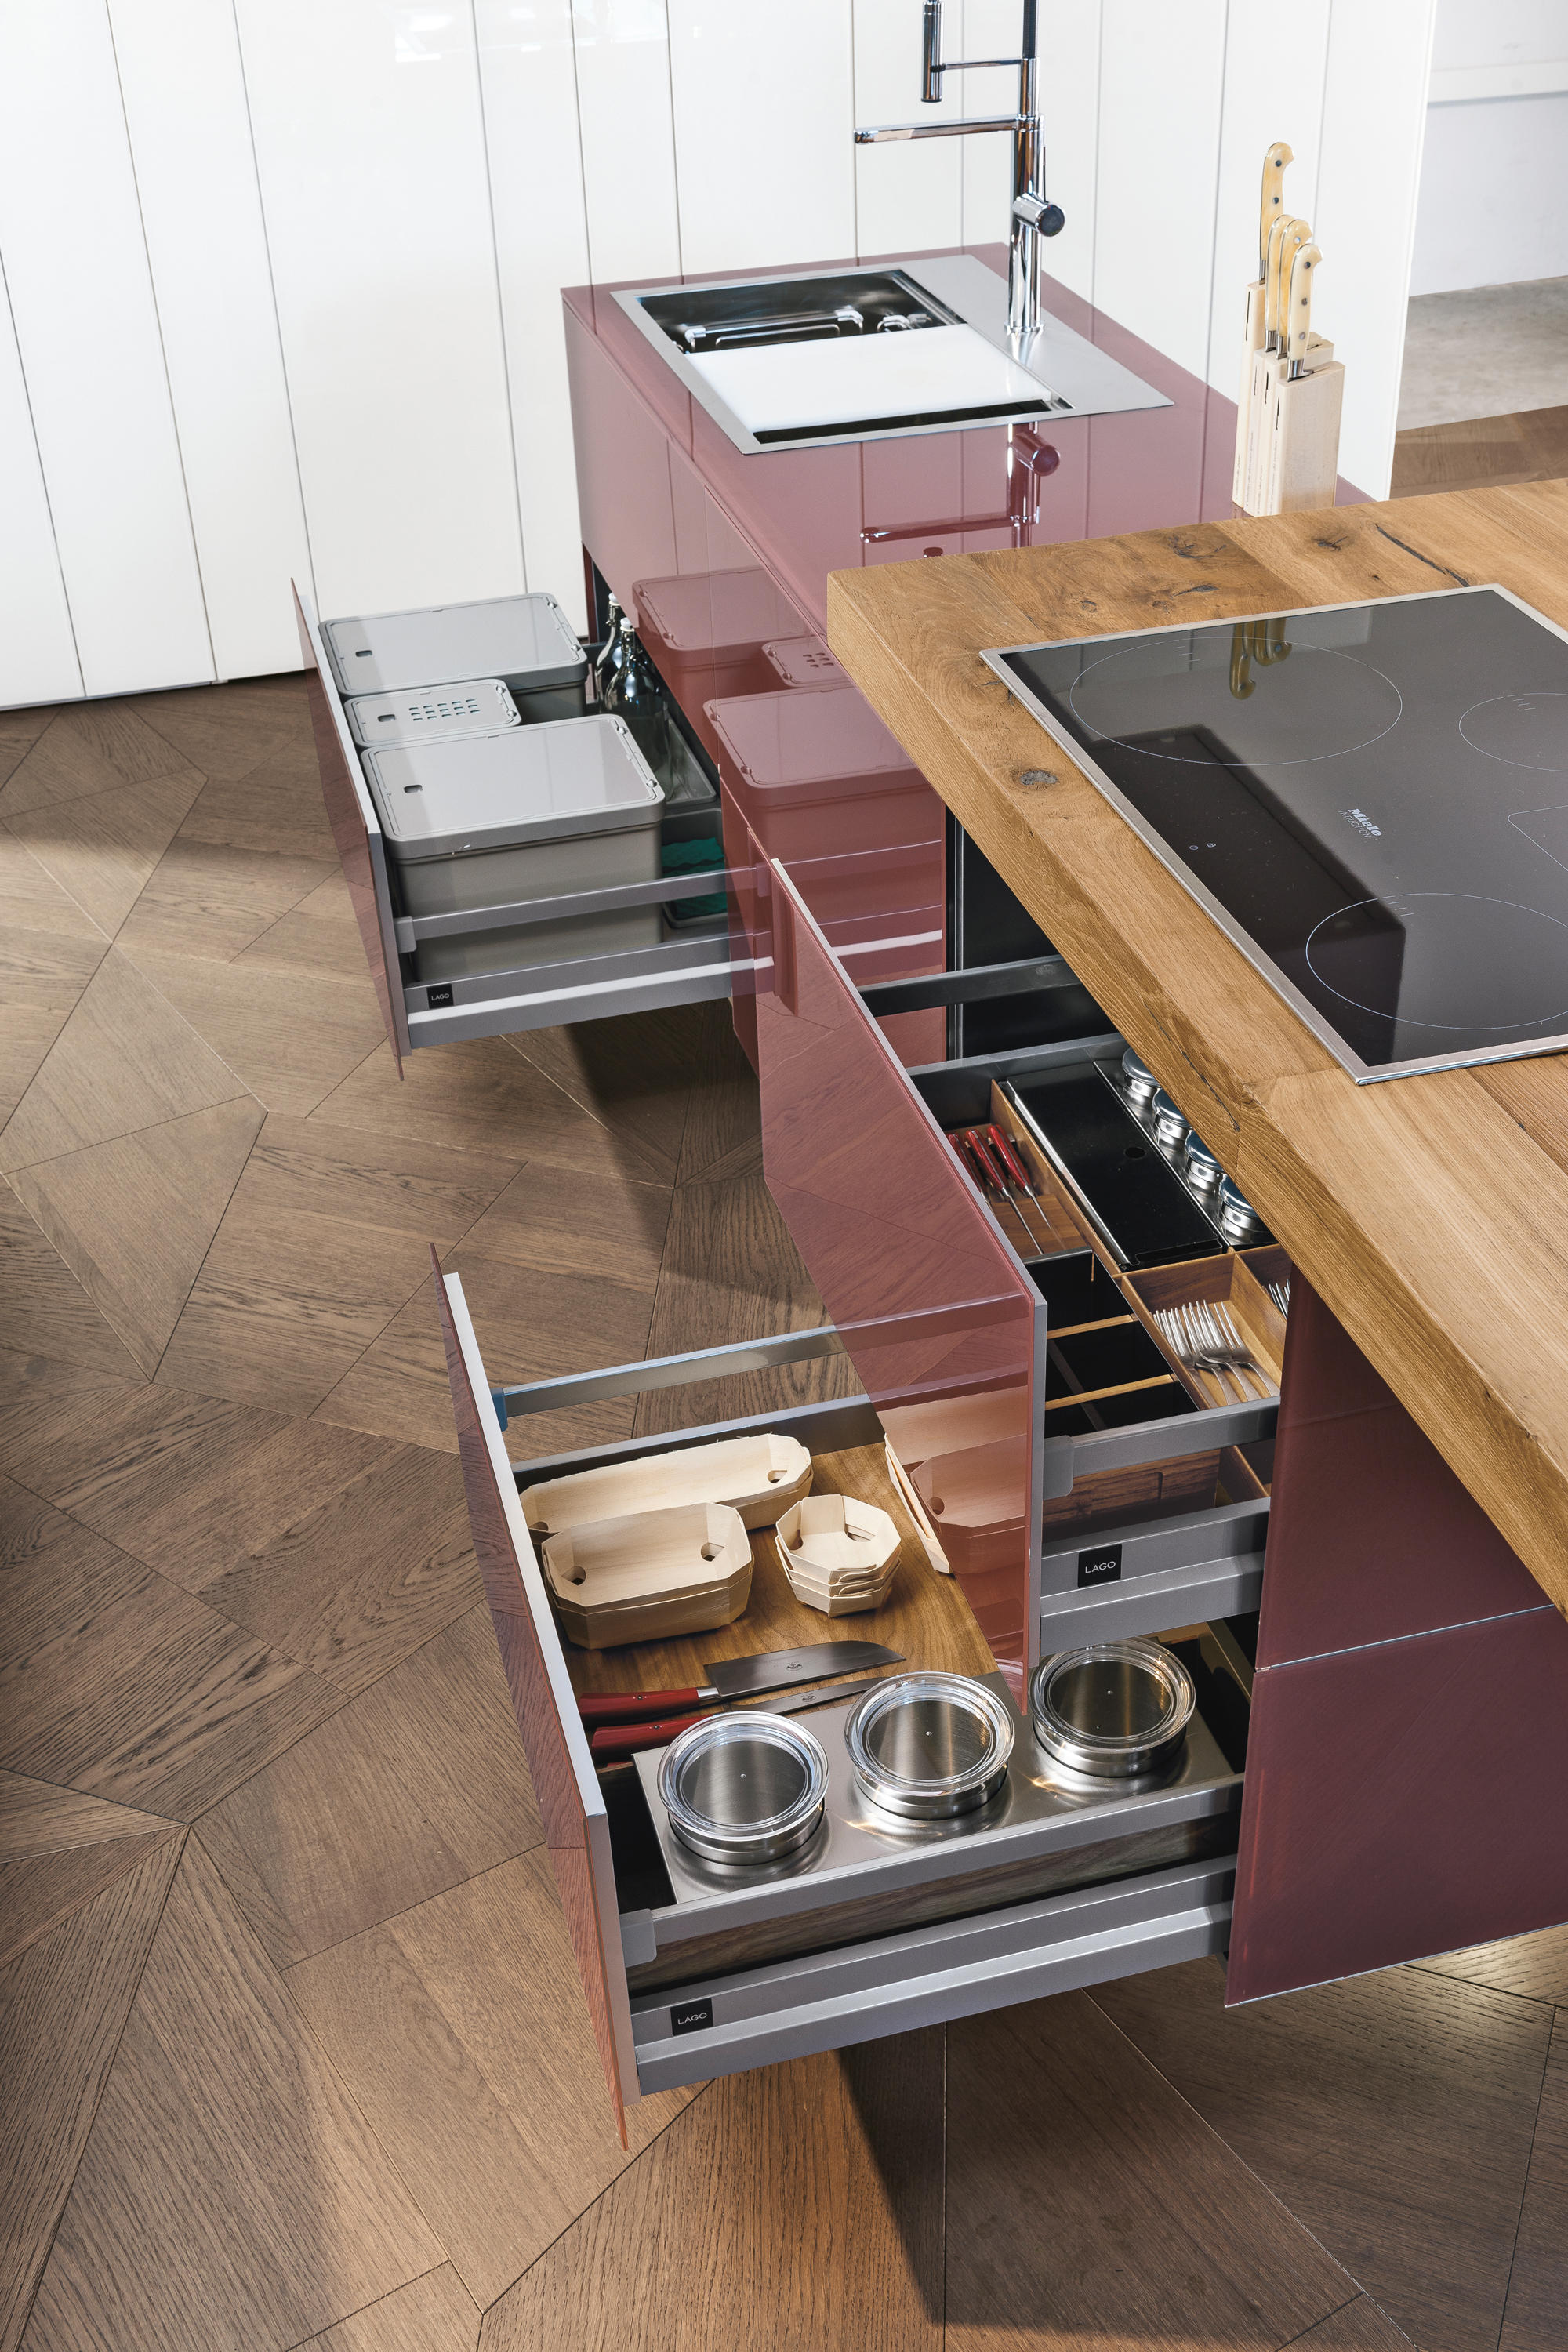 36e8 kitchen wildwood fitted kitchens from lago architonic